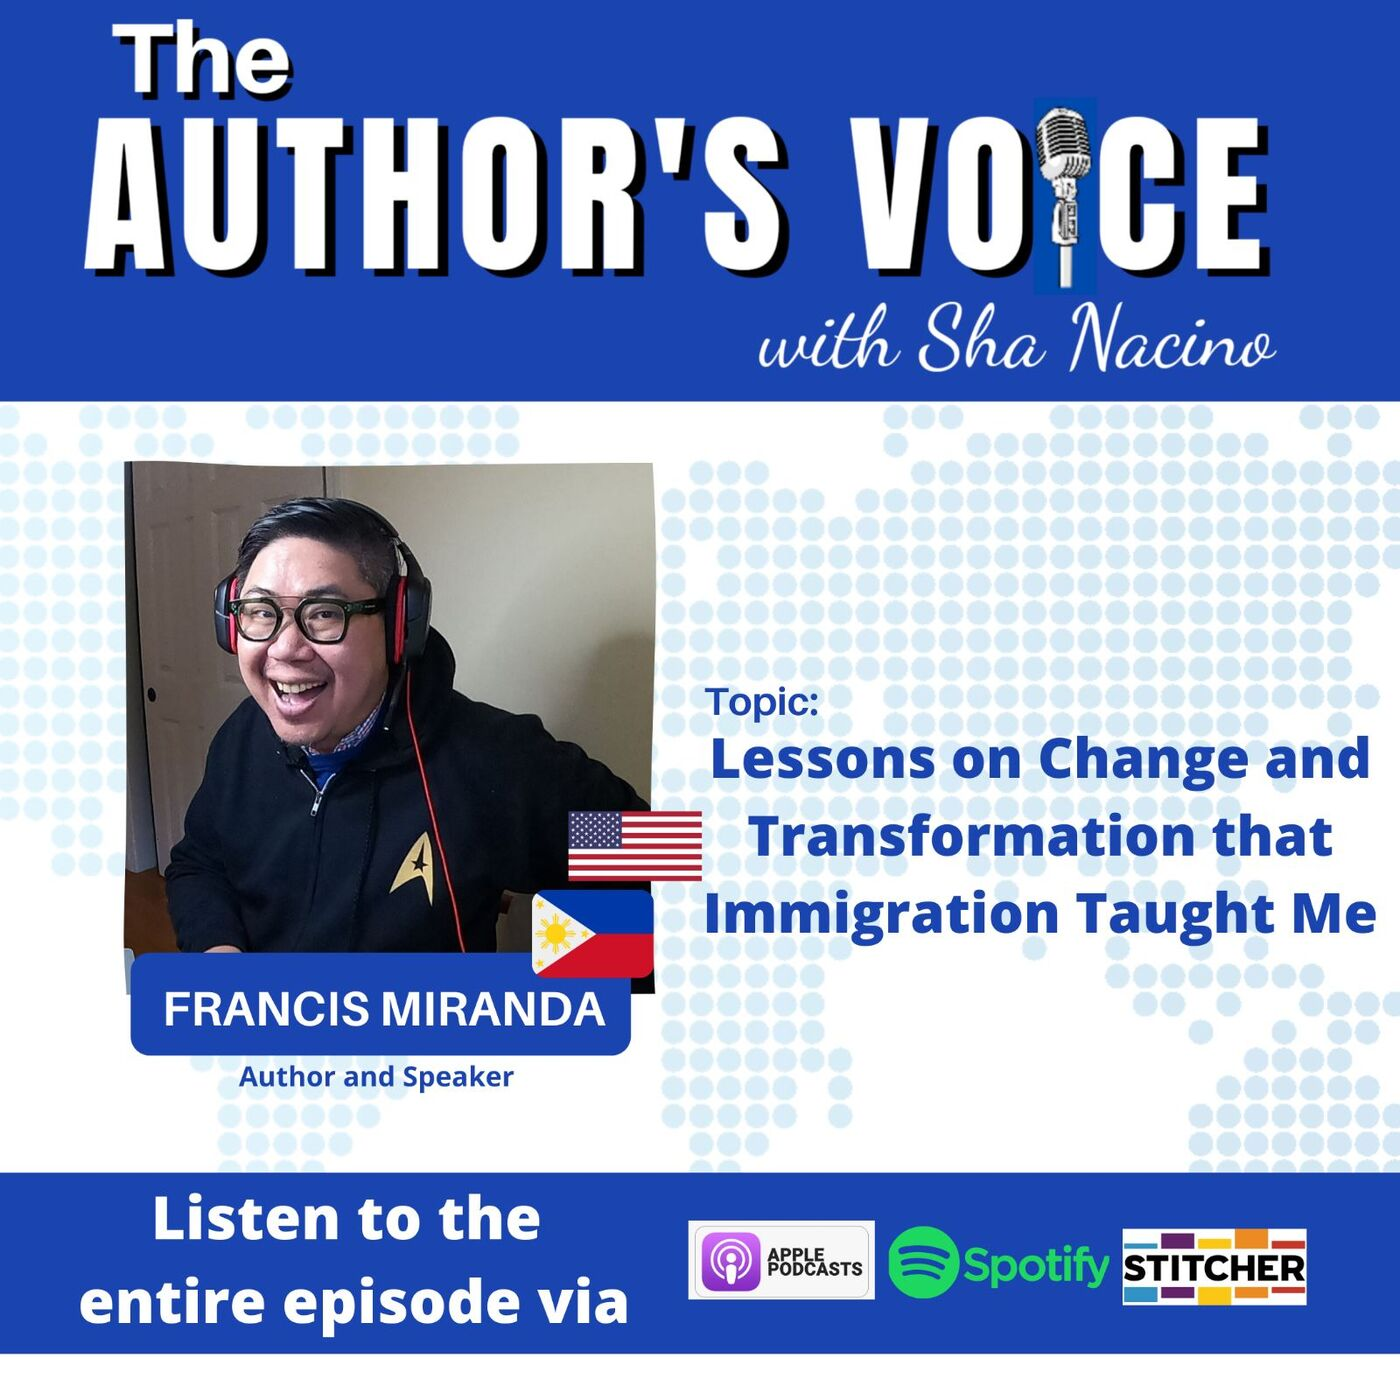 TAV 006 : Lessons on Change and Transformation that Immigration Taught Me with Francis Miranda